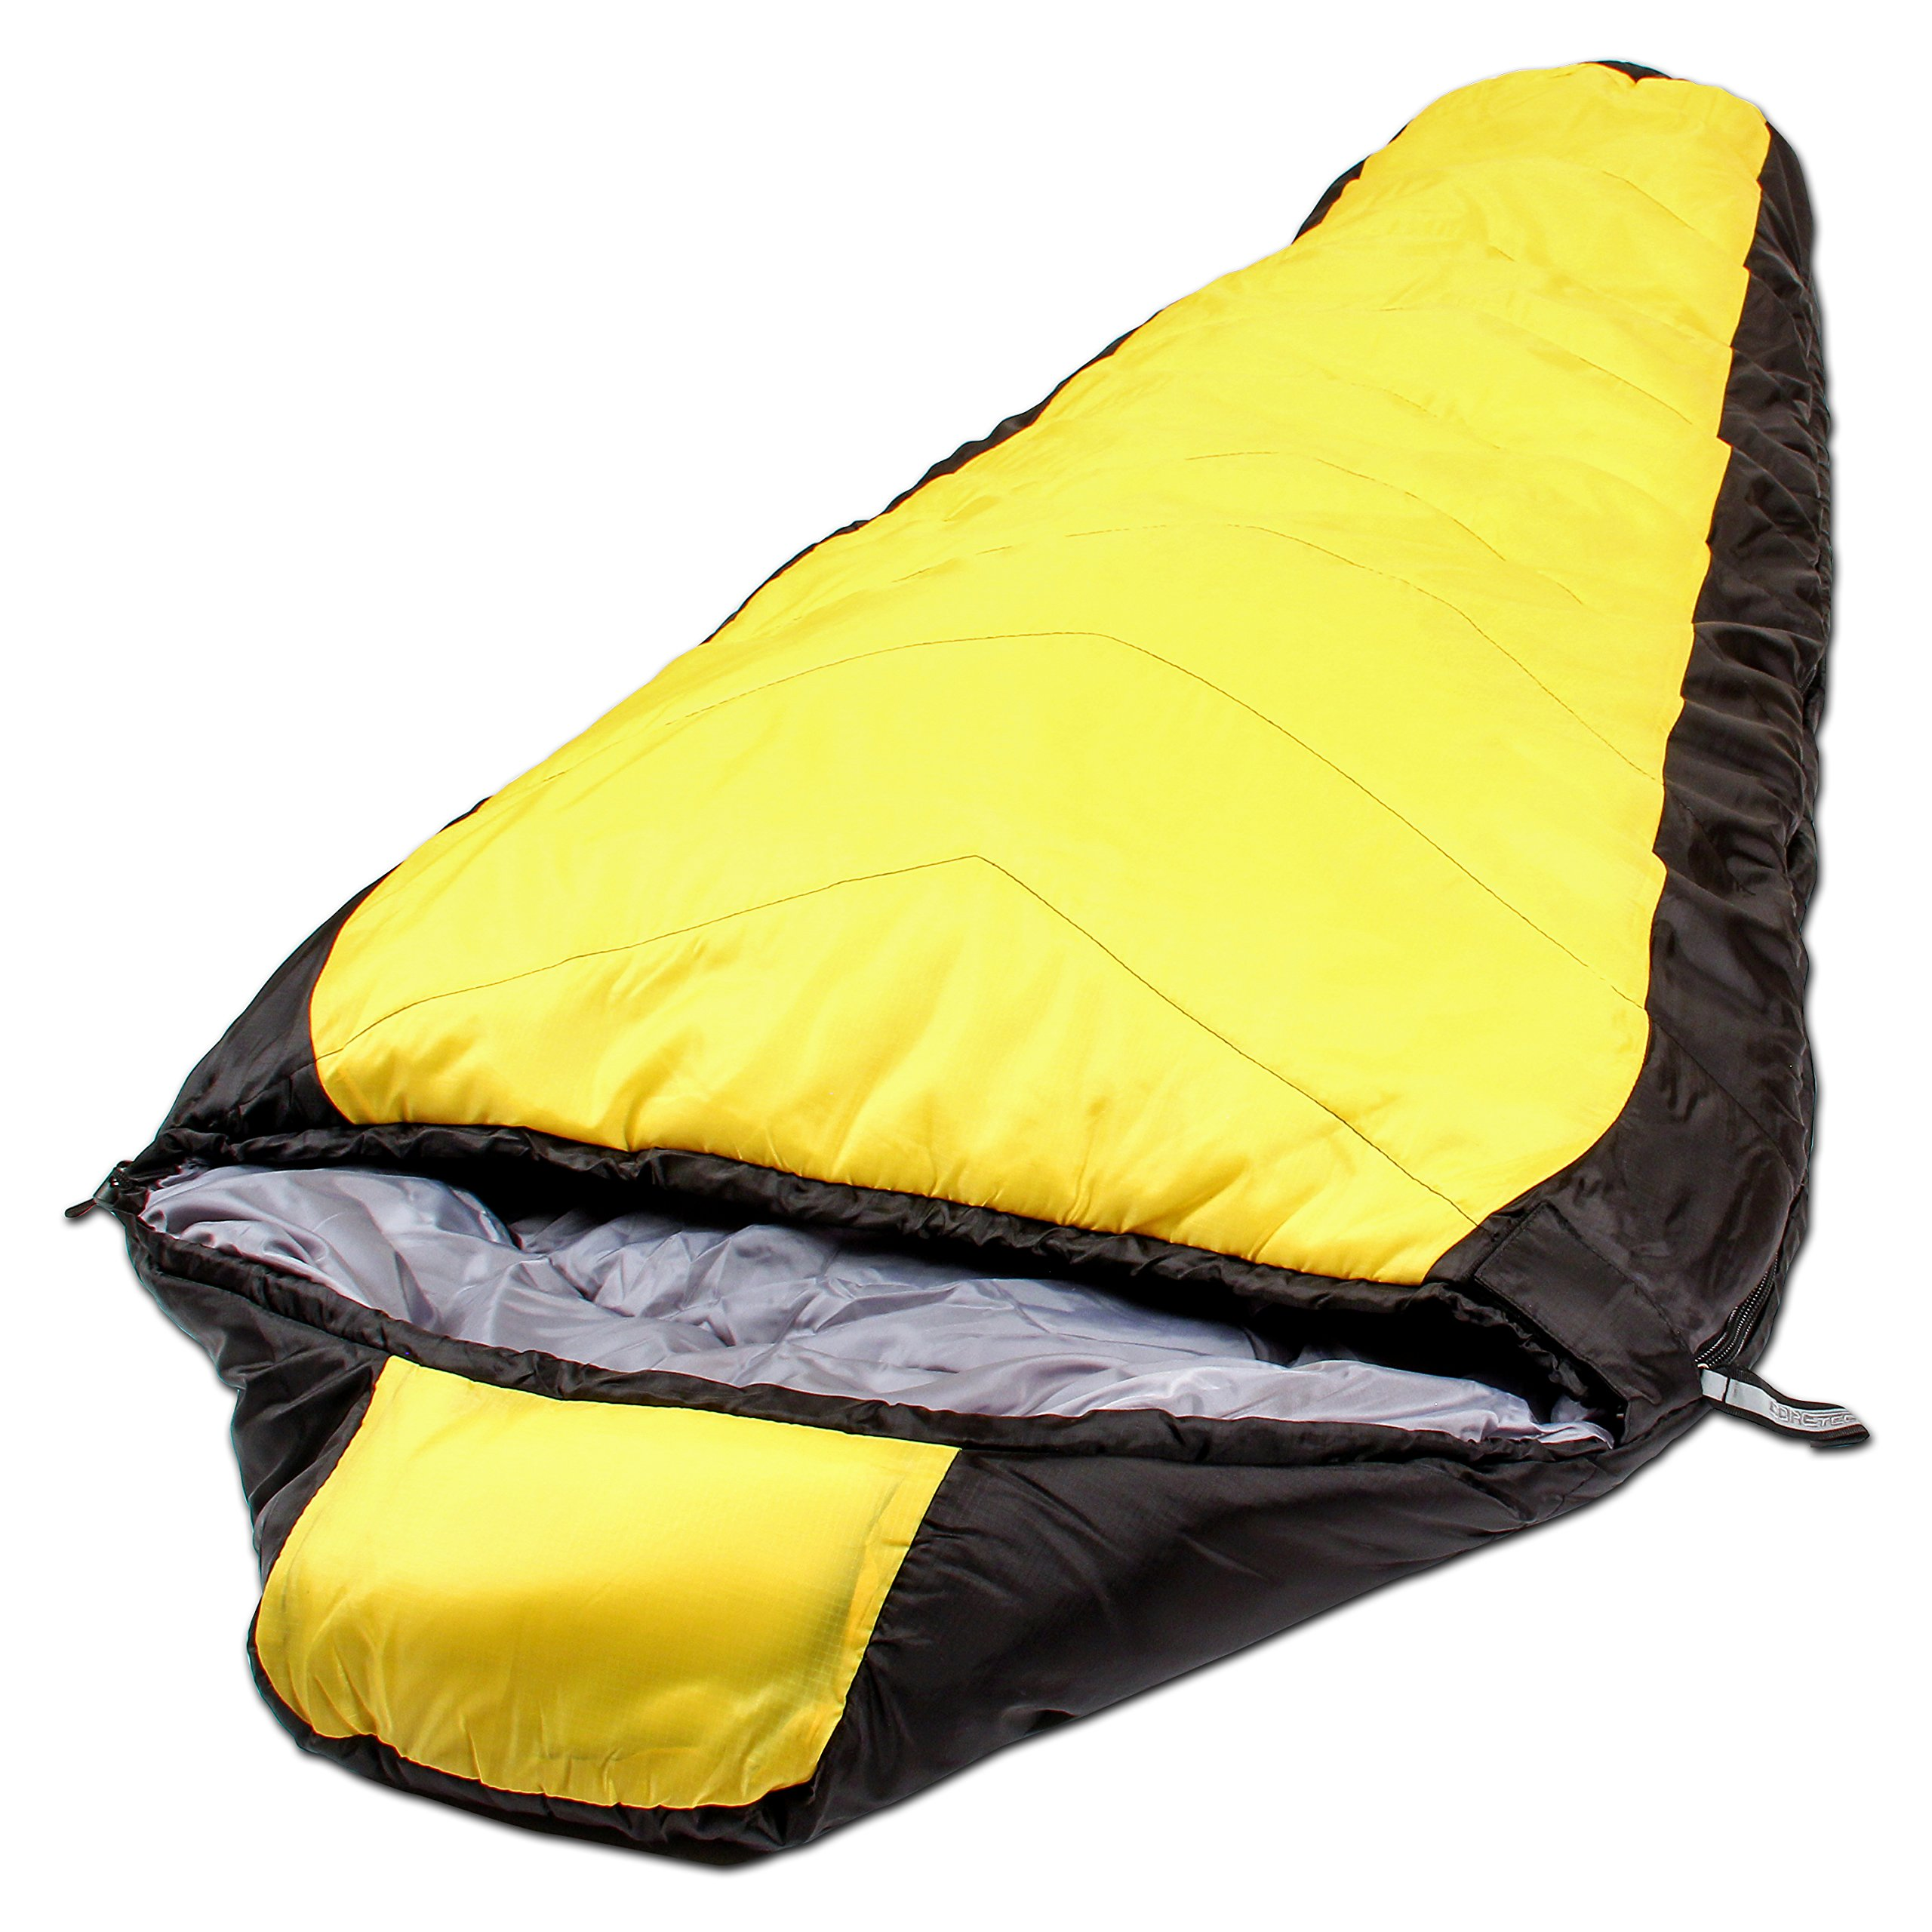 Northstar Tactical Coretech Sleeping Bag with 2 Fast Clip Closure, Yellow, 3.5-Pound